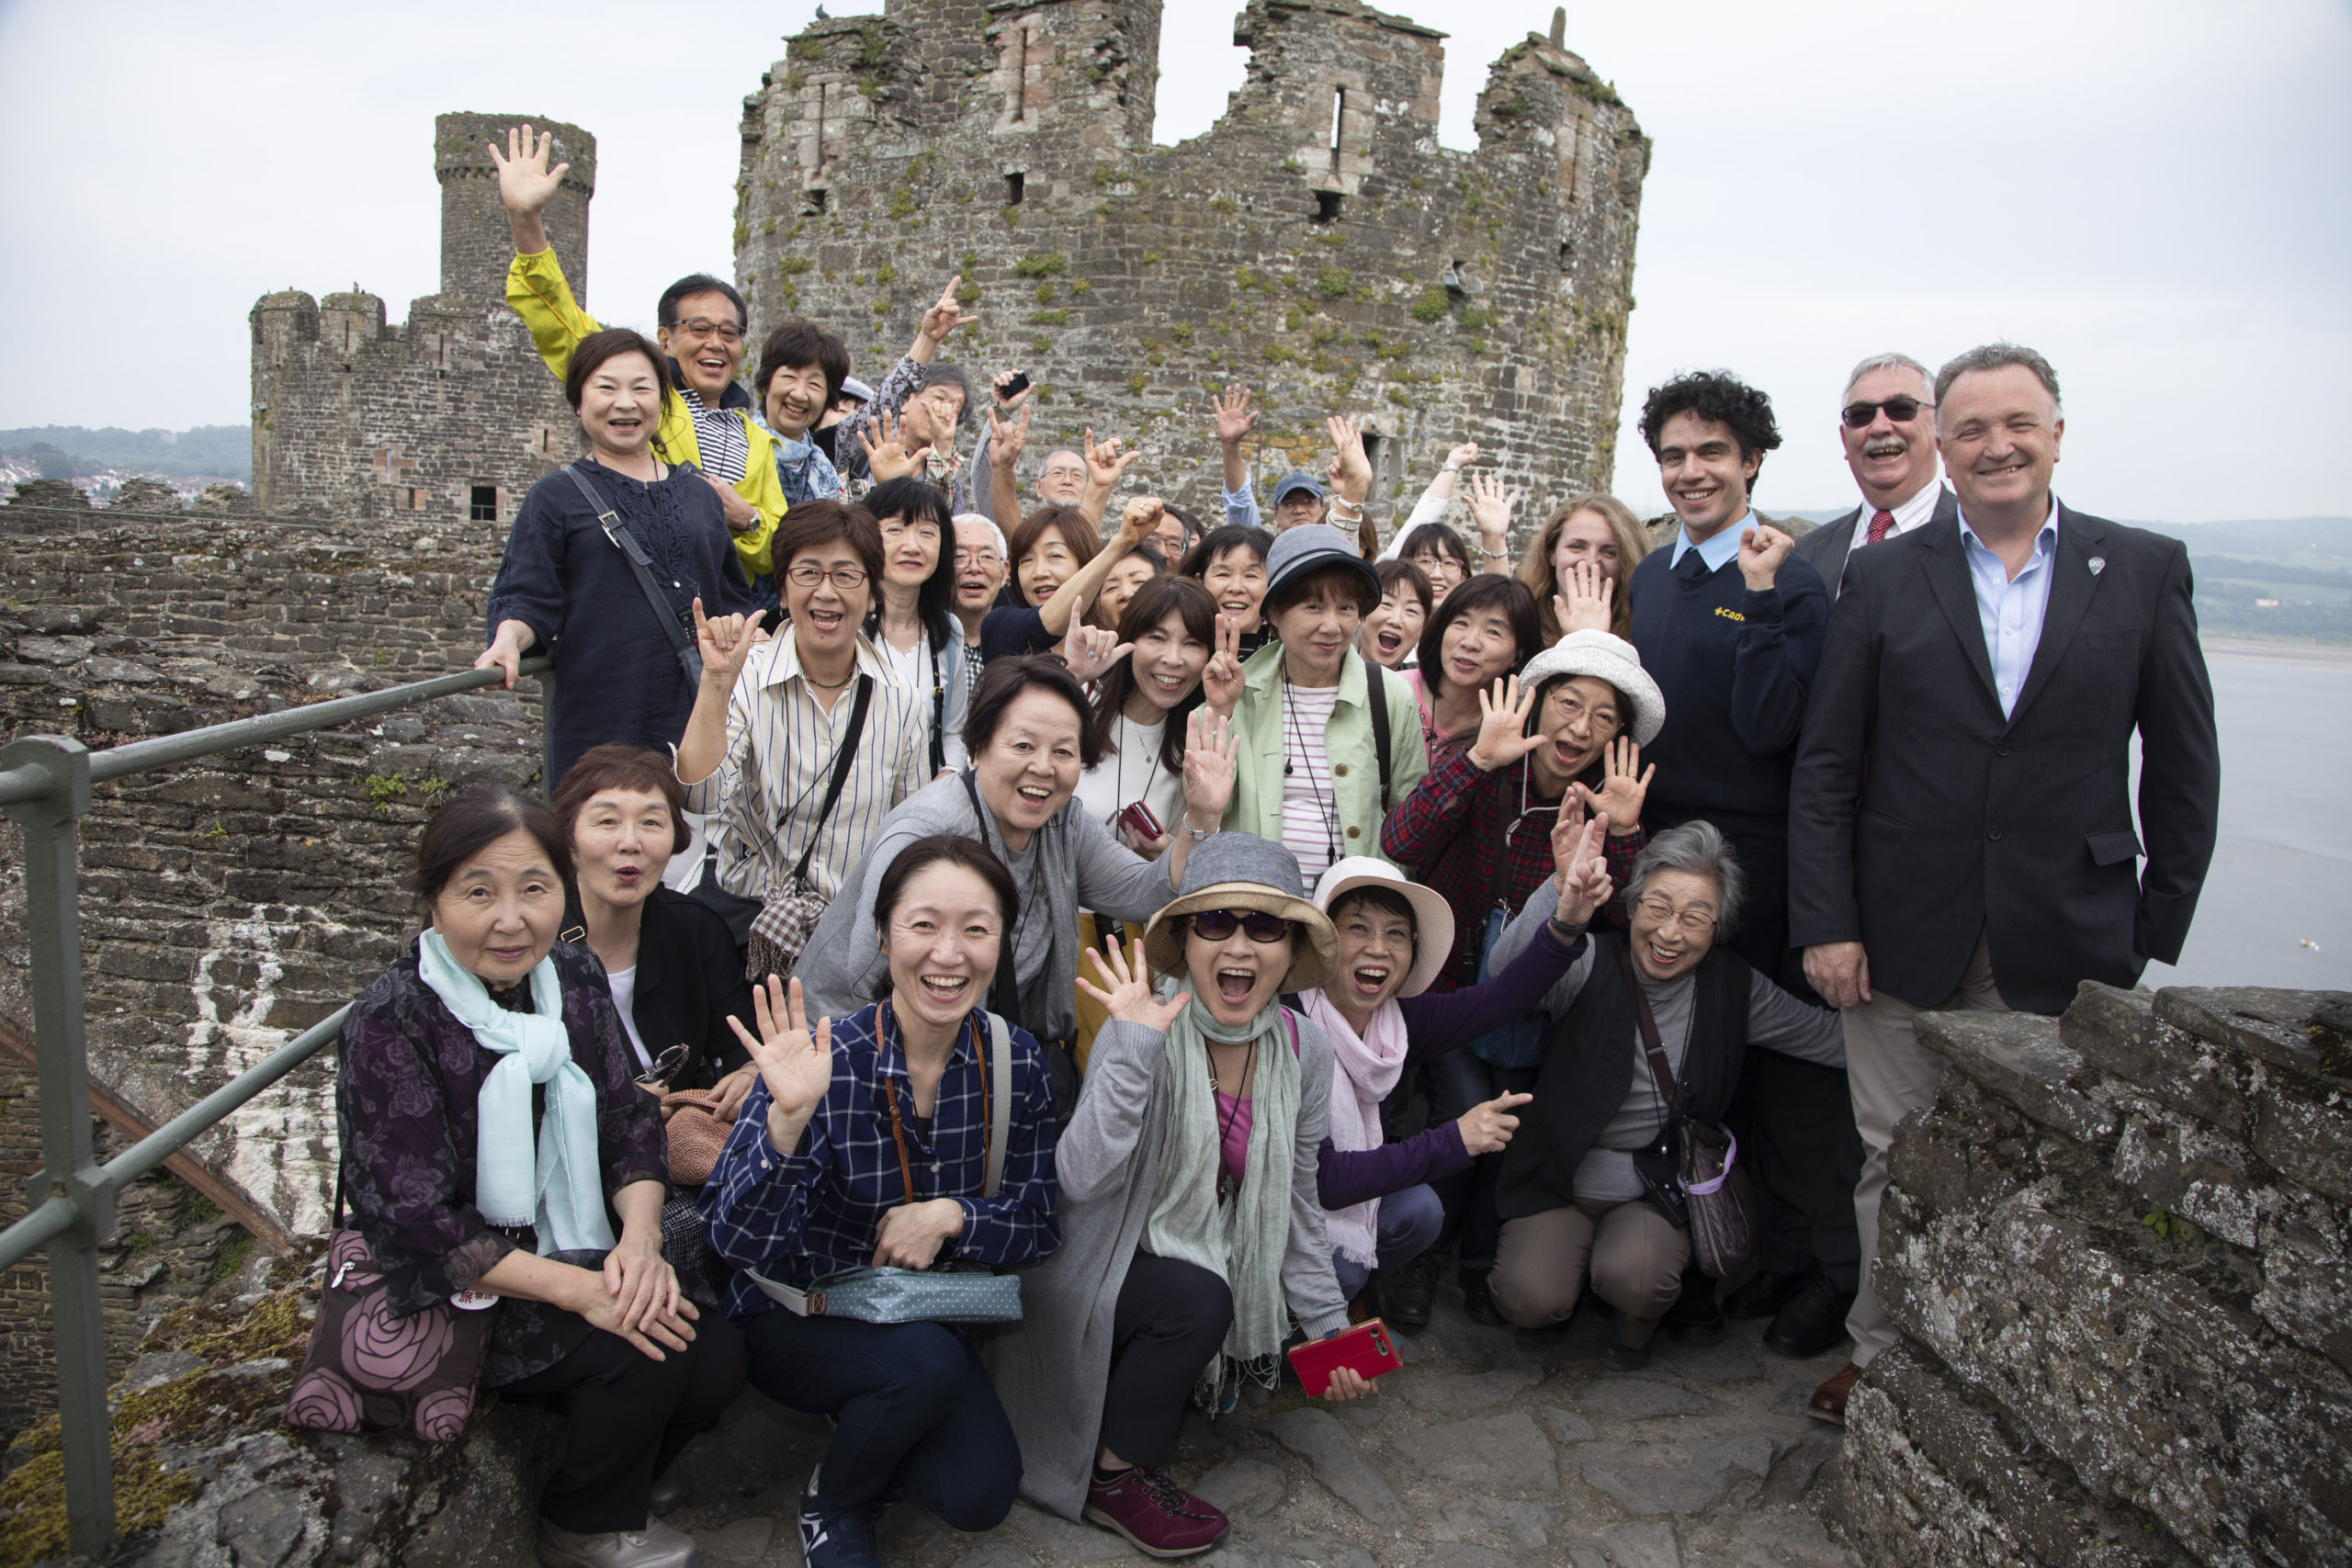 Historic agreement to twin ancient castles in North Wales and Japan